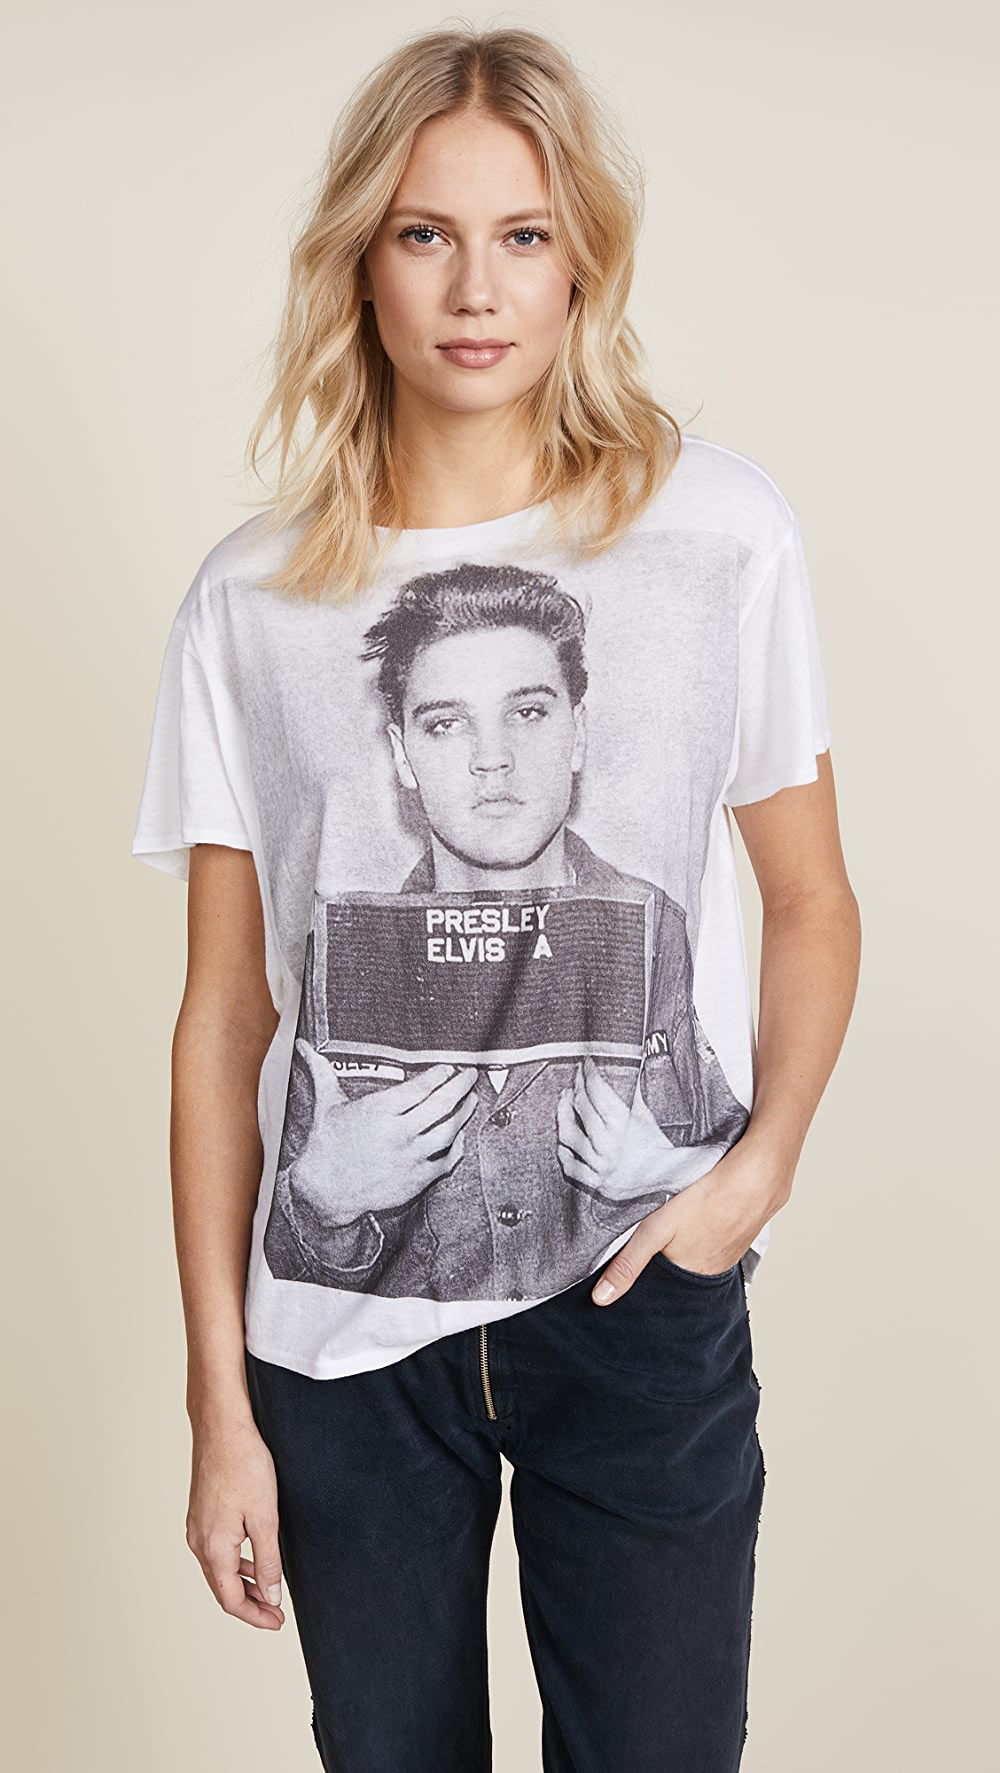 100% True R13 - Elvis Mugshot Boy Tee An Enriches And Nutrient For The Liver And Kidney